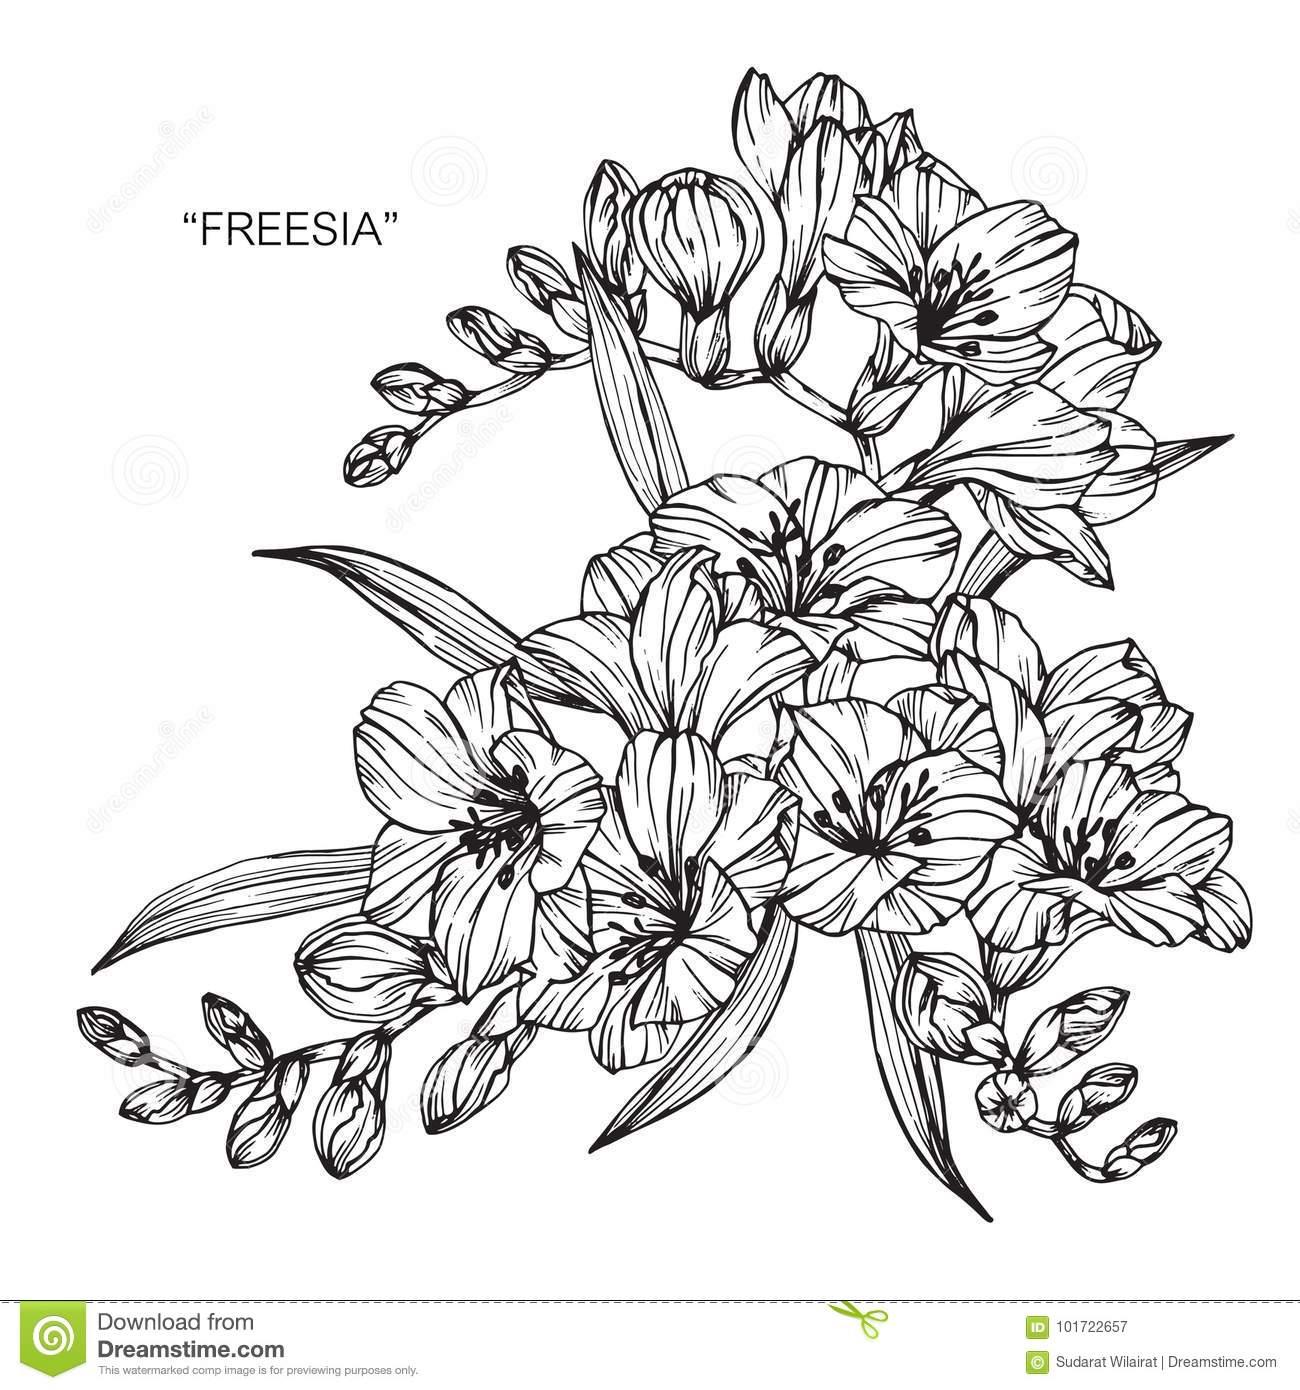 Bouquet of freesia flowers drawing and sketch stock illustration bouquet of freesia flowers drawing and sketch izmirmasajfo